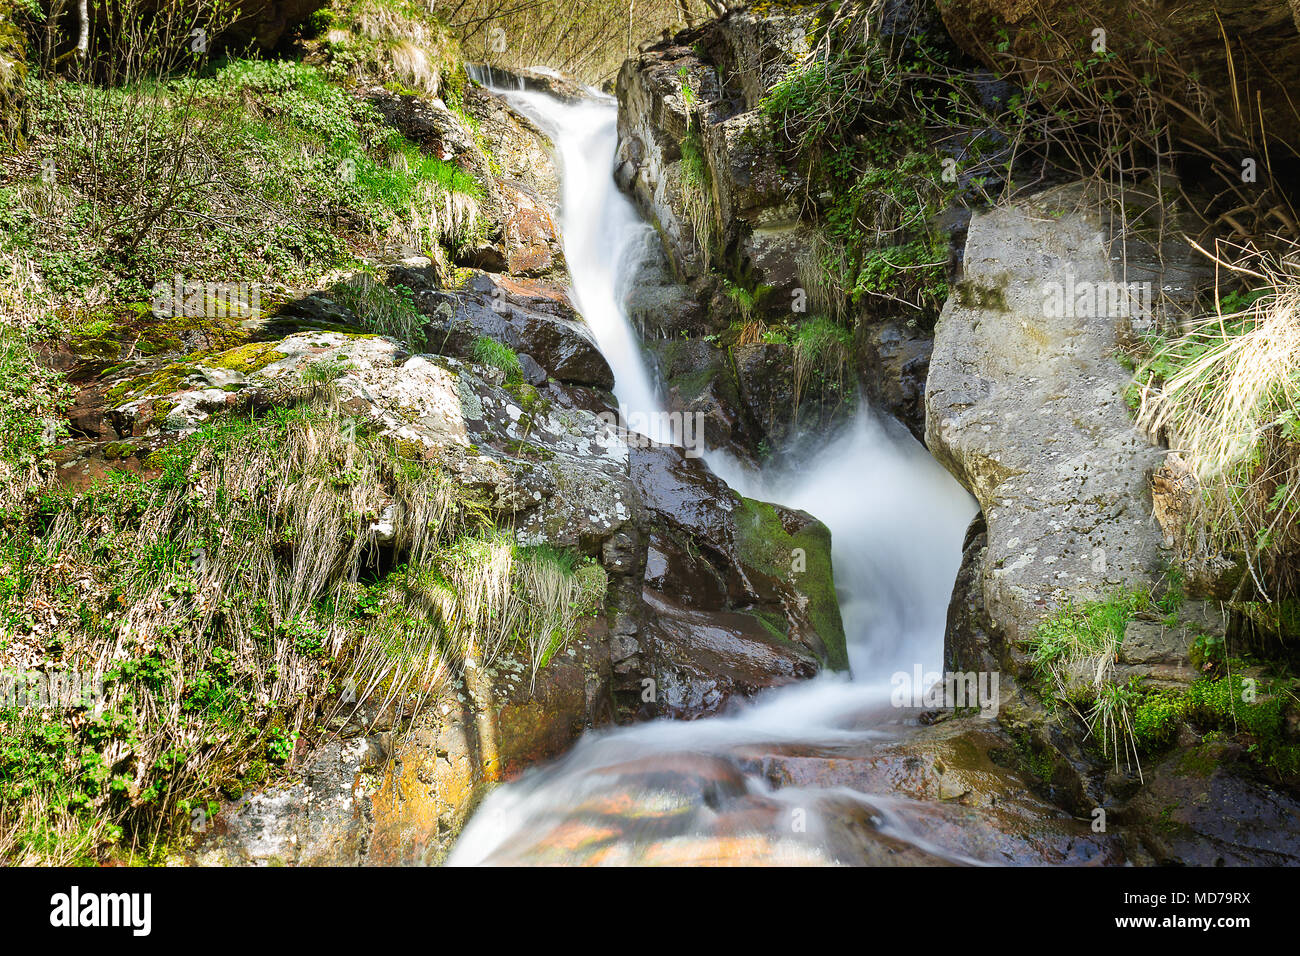 Curvy, sunlit mountain waterfall bouncing on the red, wet rocks covered with colorful moss during spring - Stock Image